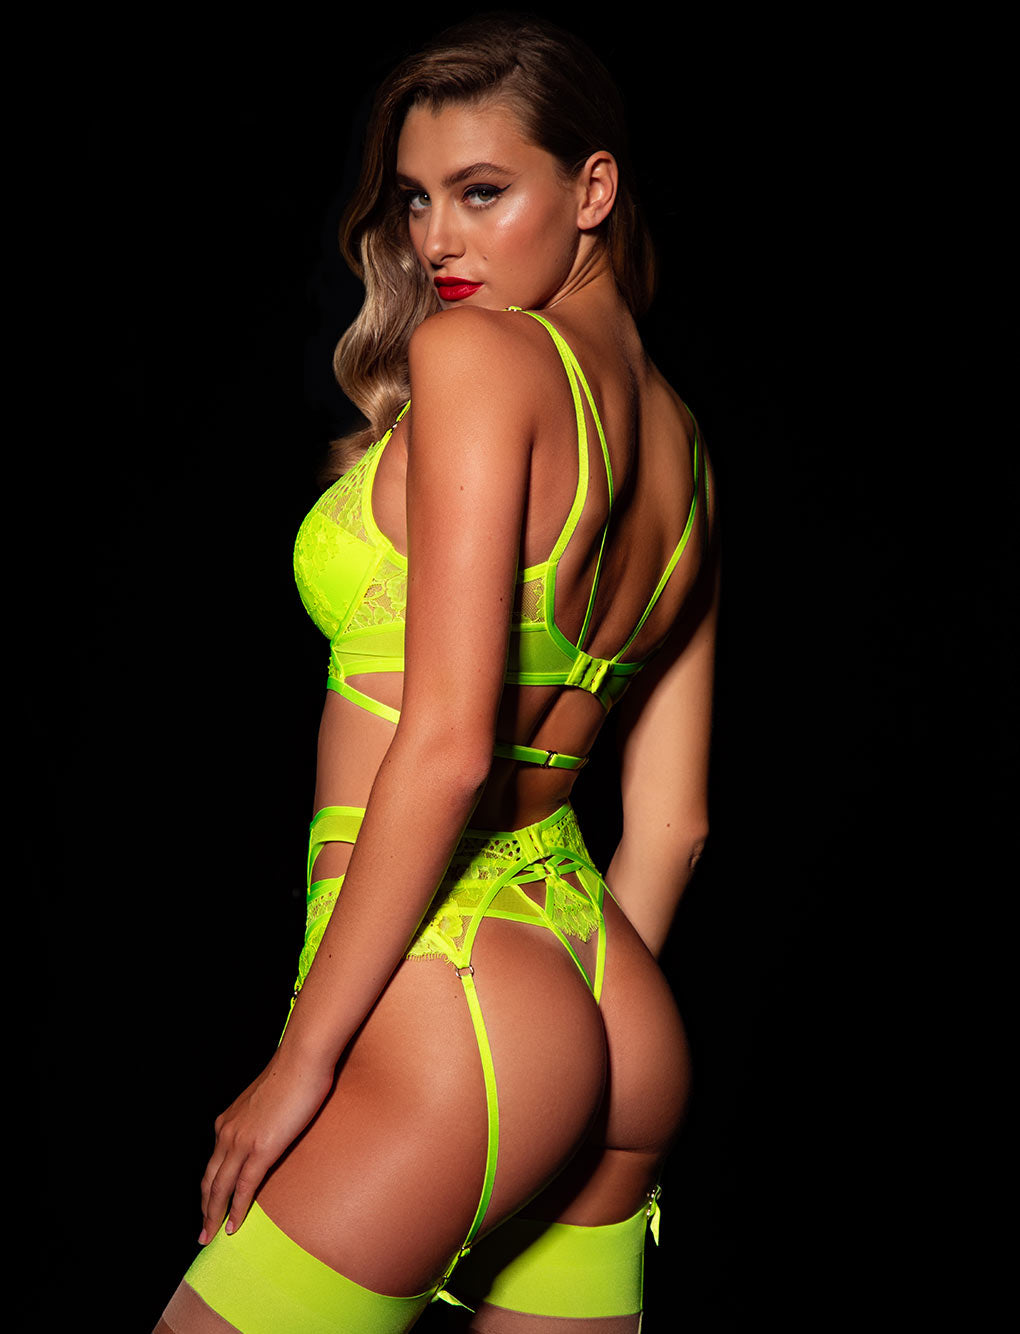 Vanessa Neon Yellow Suspender